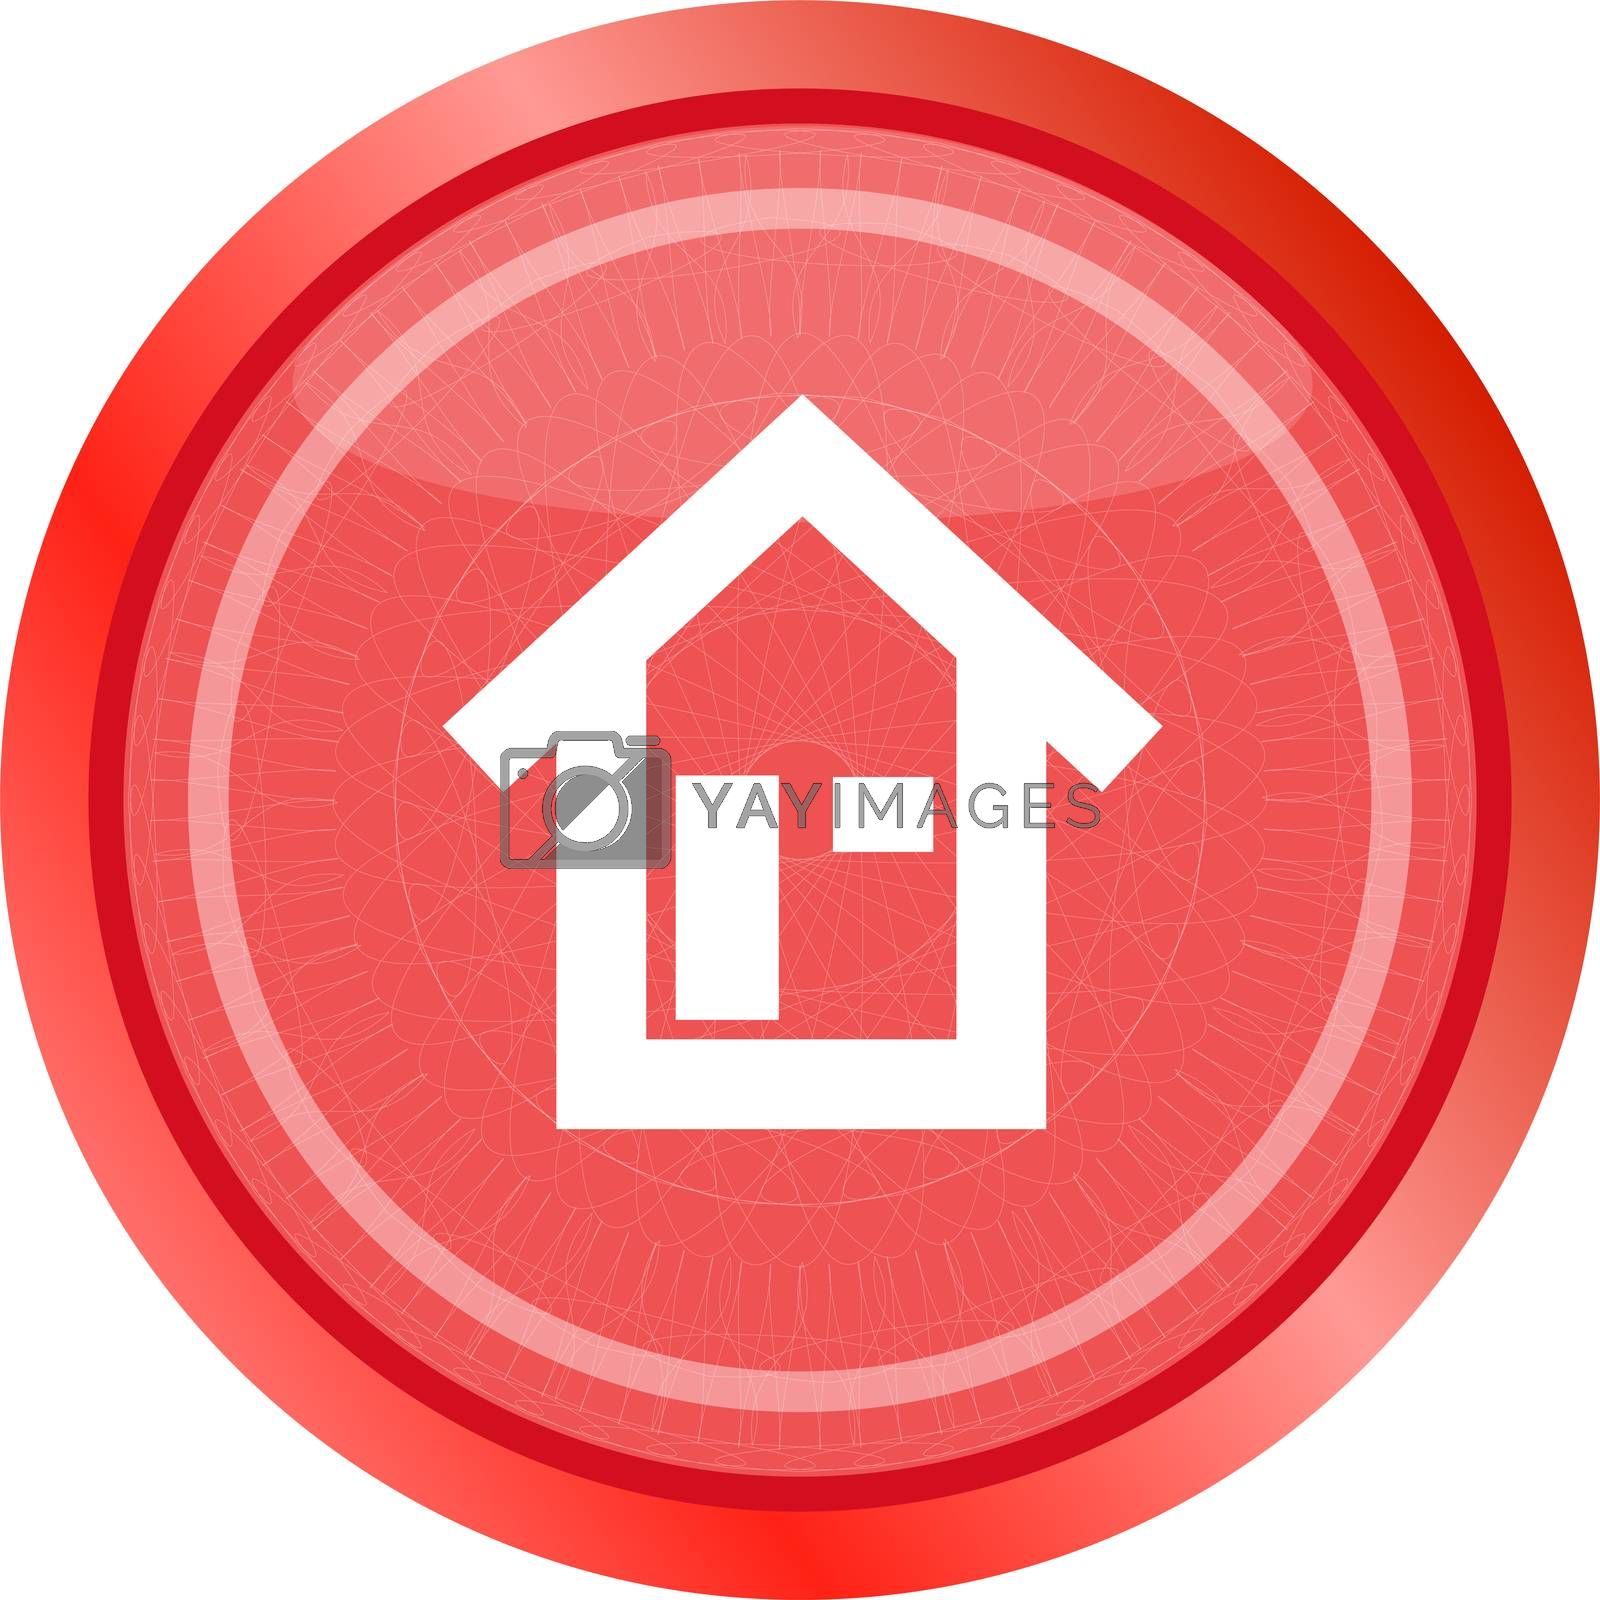 house button, signs, icons. Trendy flat style sign isolated on white background